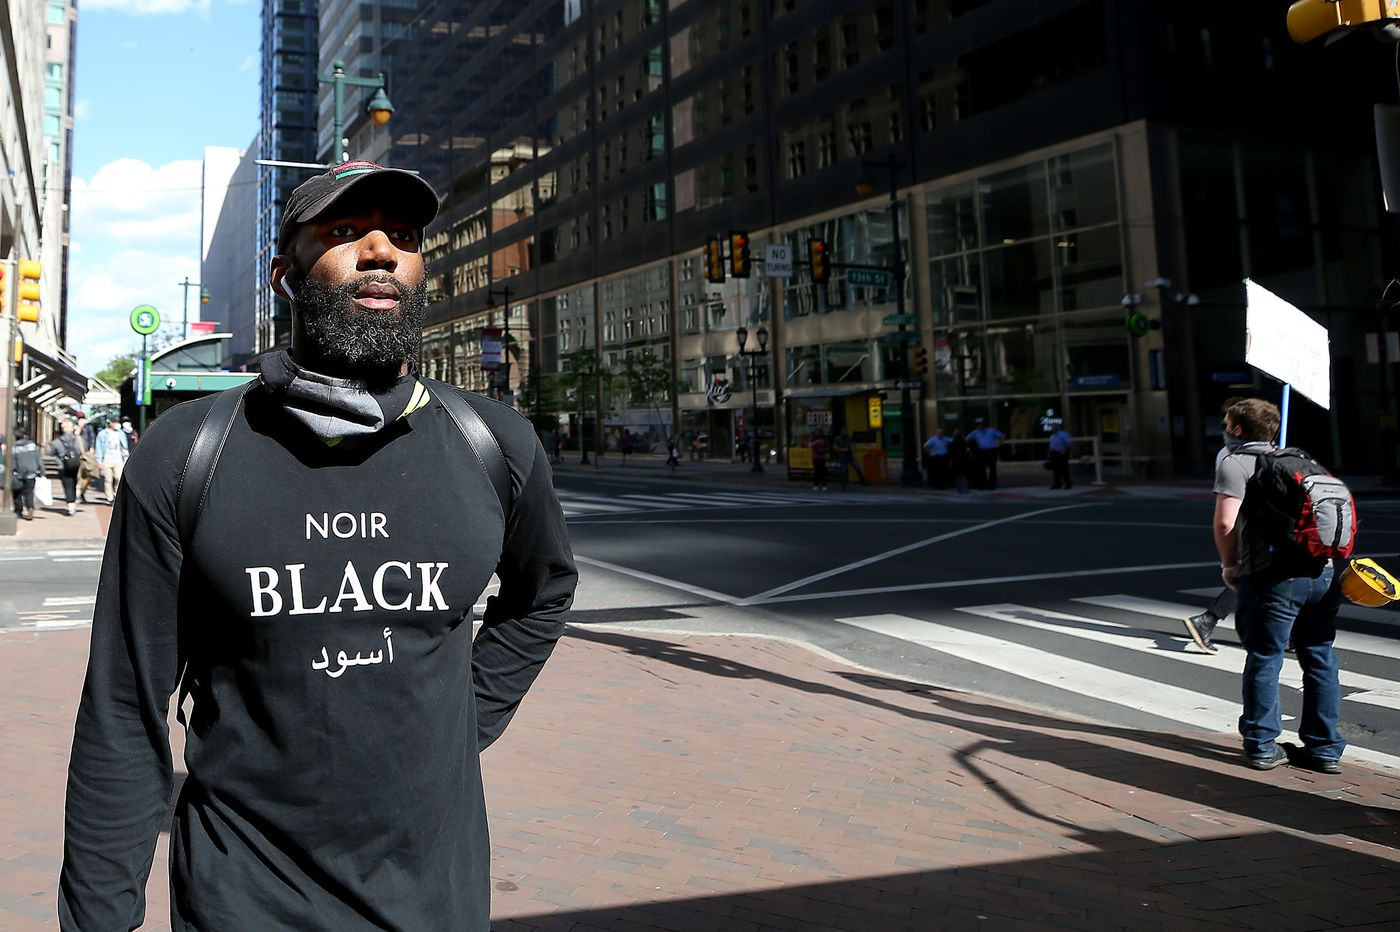 Why I march: I don't want police violence supported by my tax dollars | Malcolm Jenkins